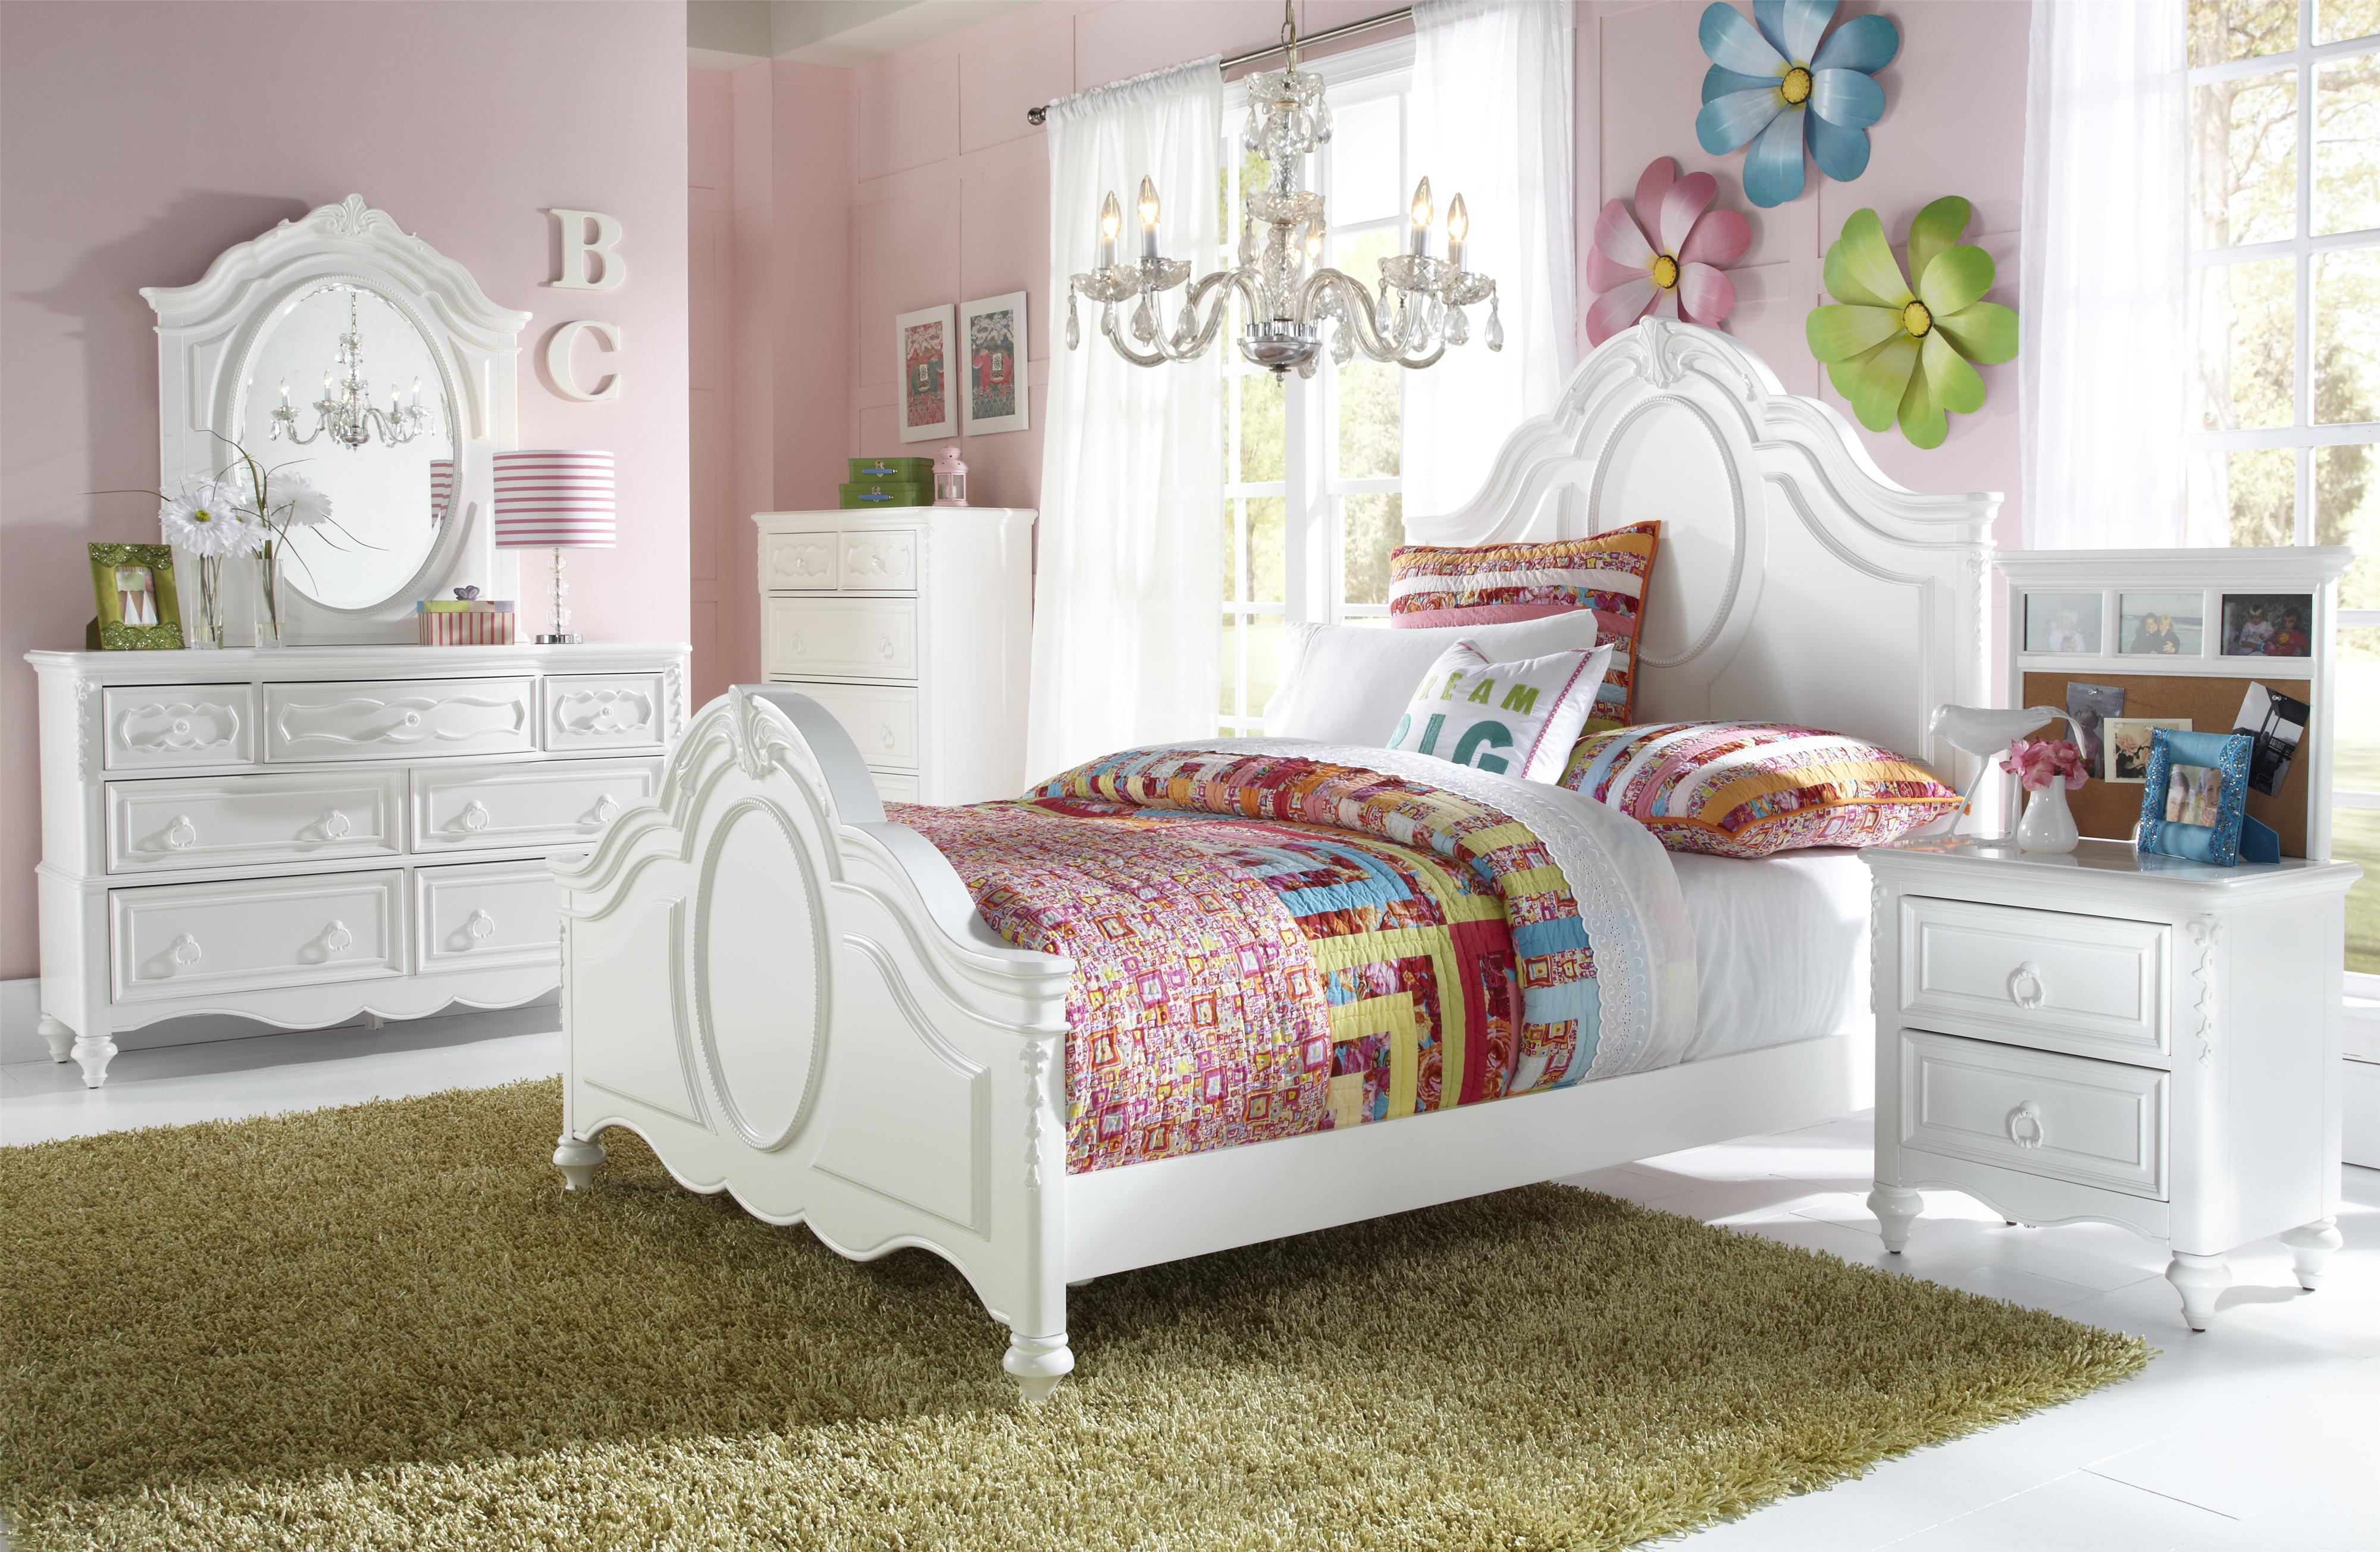 Magnificent Sweetheart Youth 8470 By Samuel Lawrence Rooms For Less Interior Design Ideas Helimdqseriescom